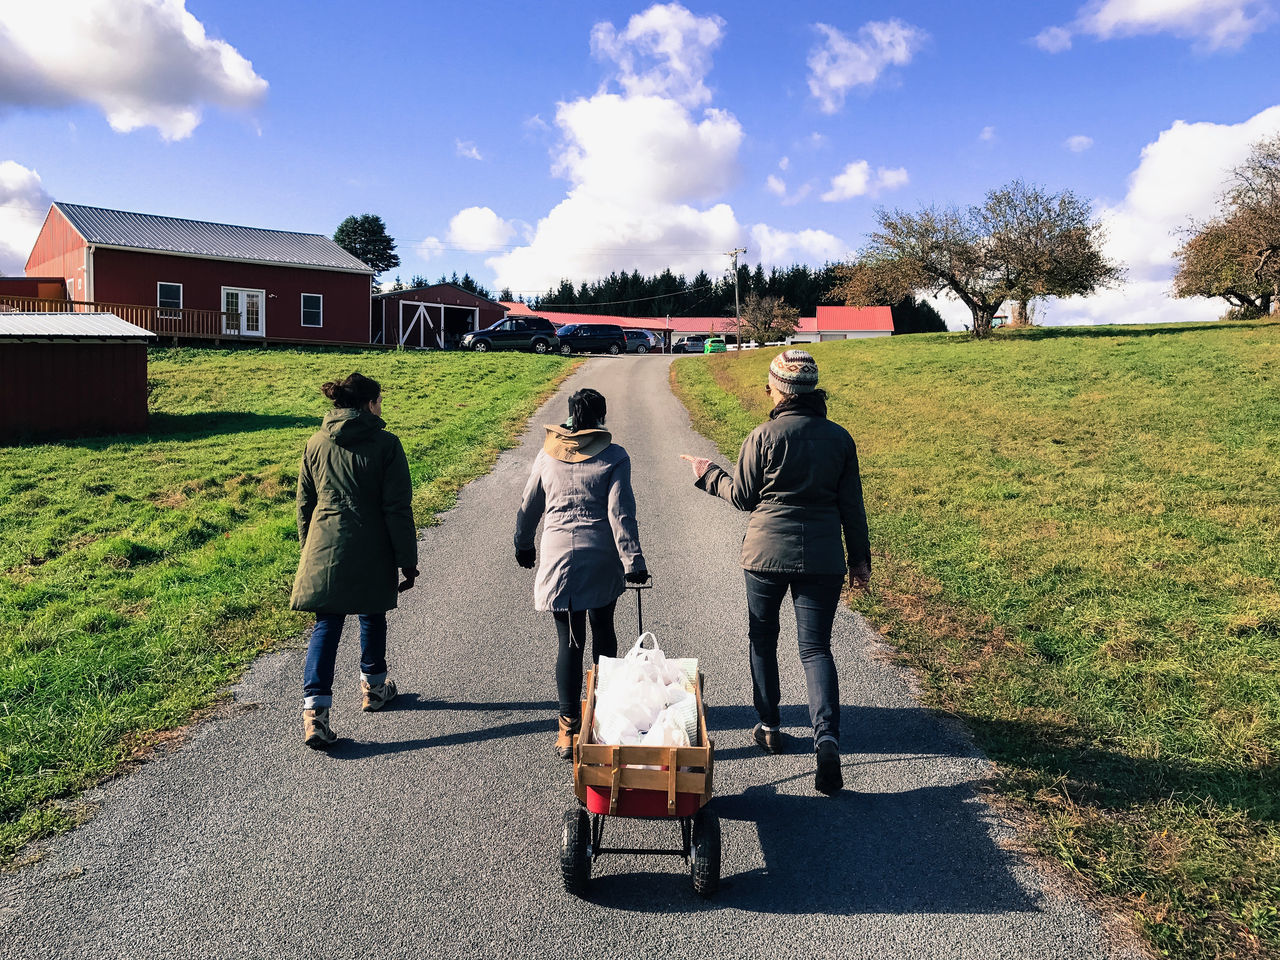 Apple picking in the Catskills, New York, USA. Photo by Tom Bland. Agriculture Apple Picking Autumn Autumnal Fall Farm Friends Friendship IPhone IPhoneography Lifestyle New York Orchard Orchards Outdoors Rural Seasonal Seasonal Fruit Thirties Women